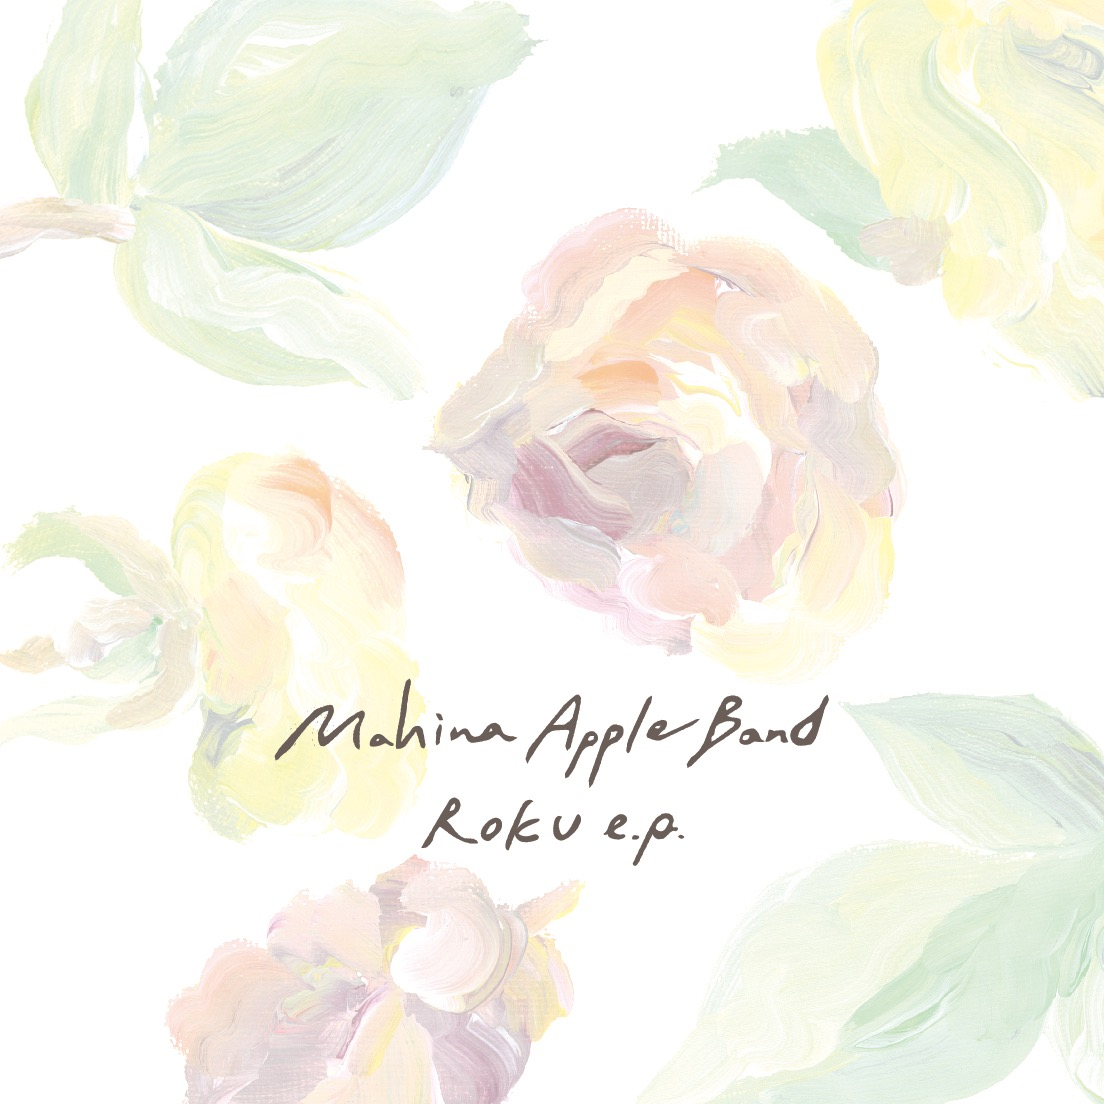 MAHINA APPLE BAND / ROKU E.P.